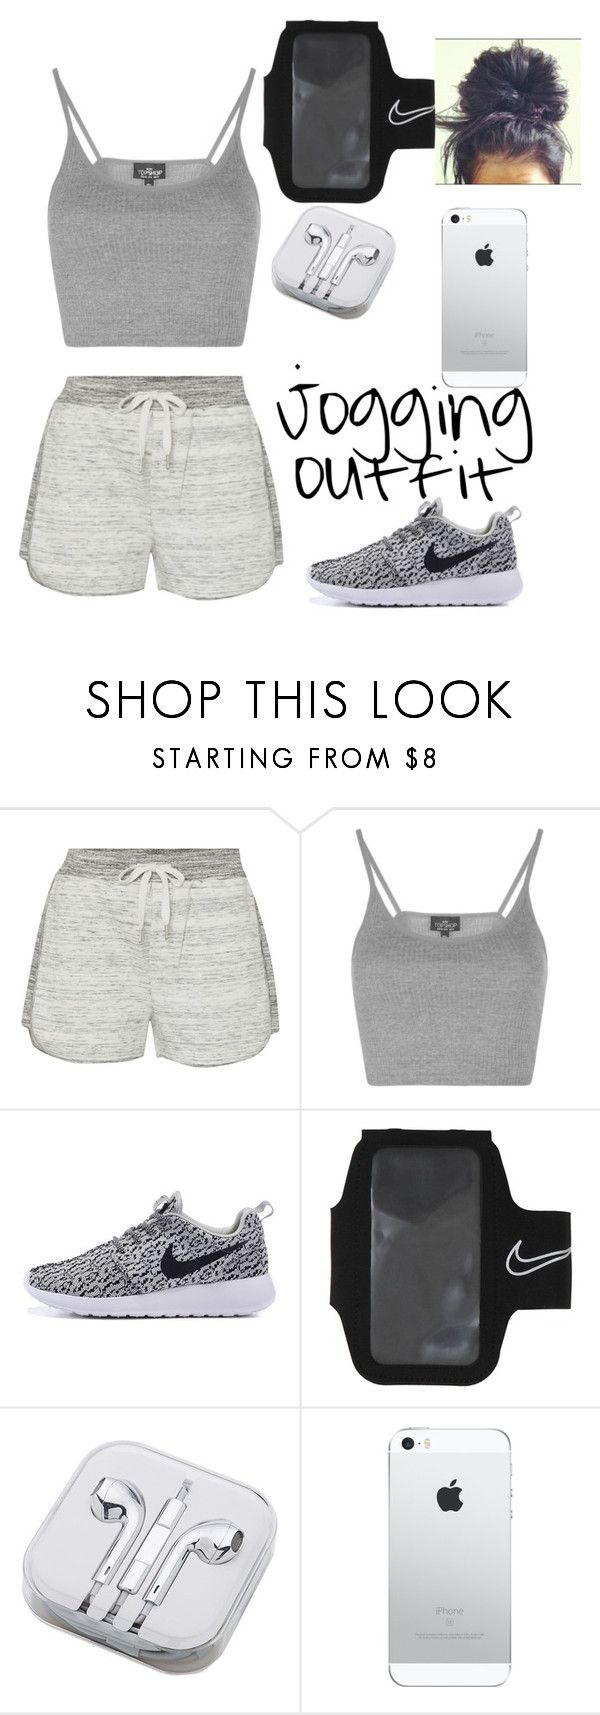 17 best ideas about jogging outfit on pinterest jogging motivation sports clothing stores and. Black Bedroom Furniture Sets. Home Design Ideas